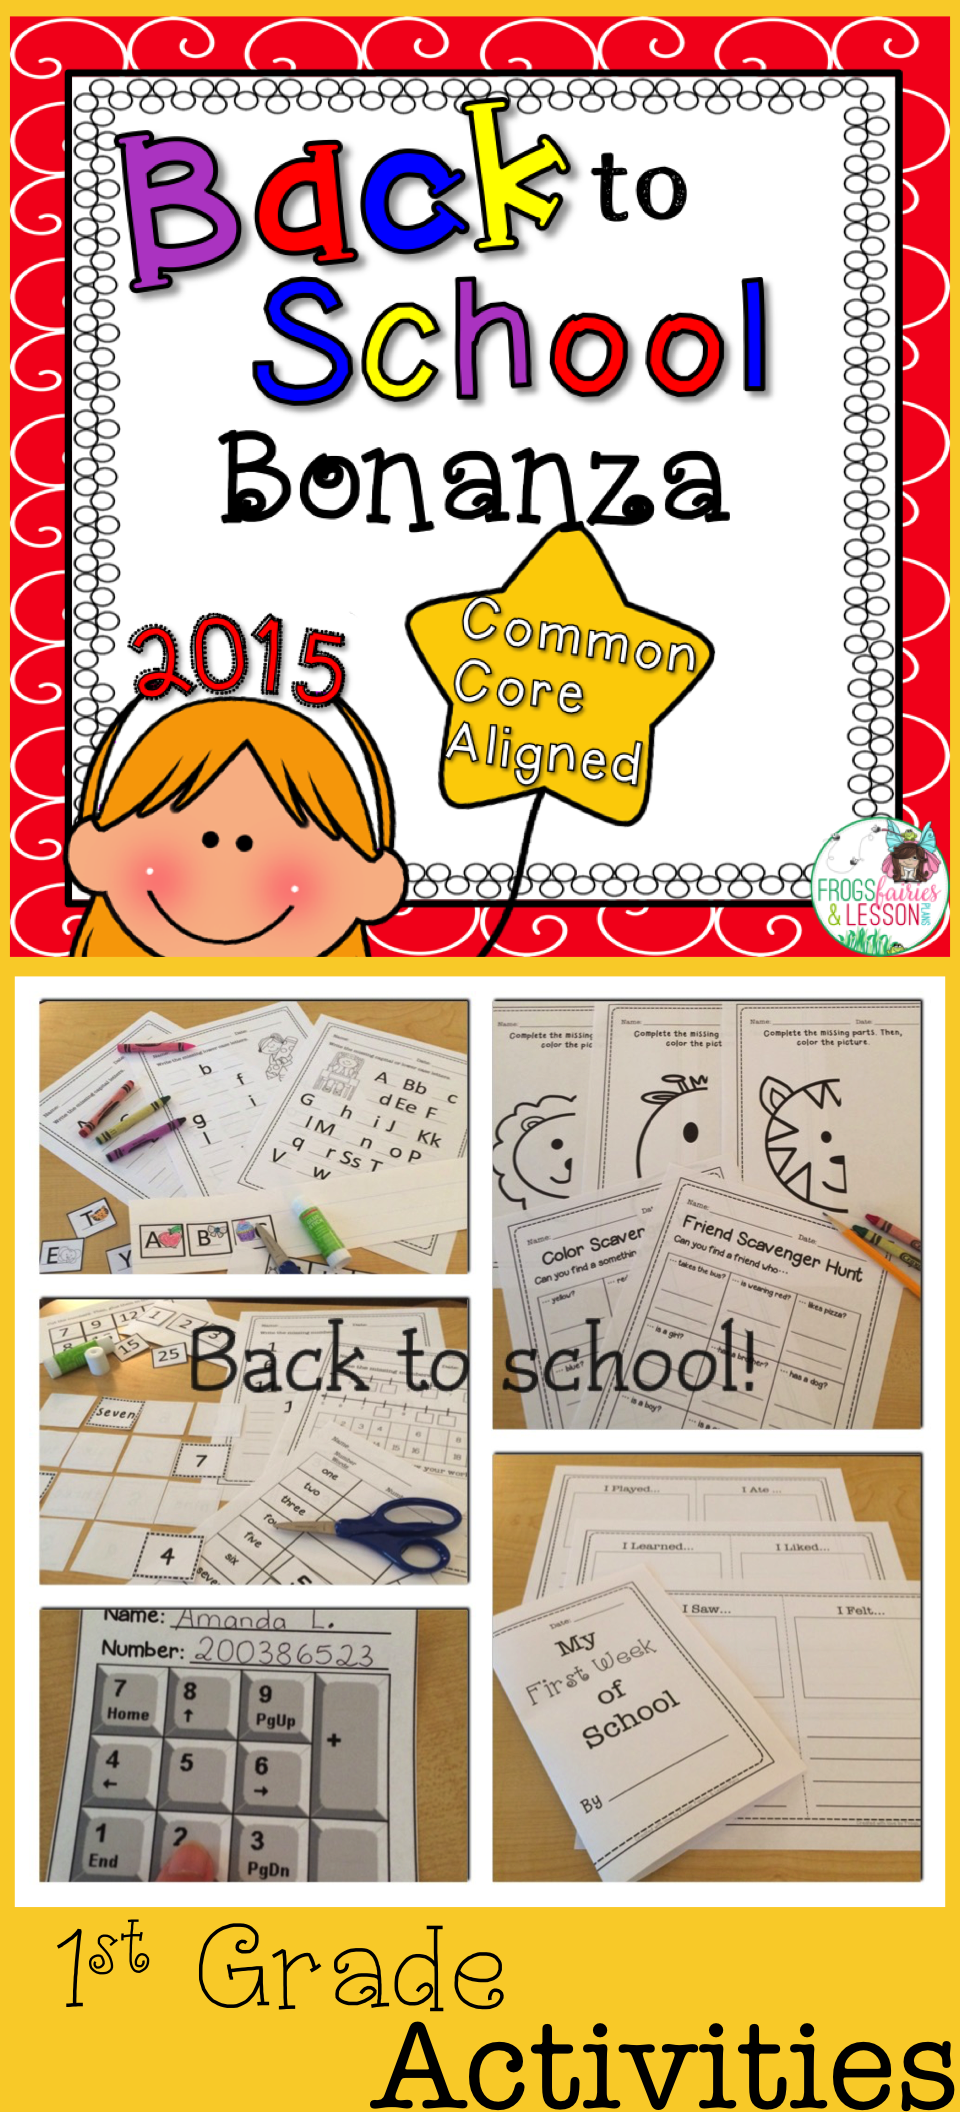 Back to school activities! Review CCSS and have fun at the same time with these 30 activities. Great variety!